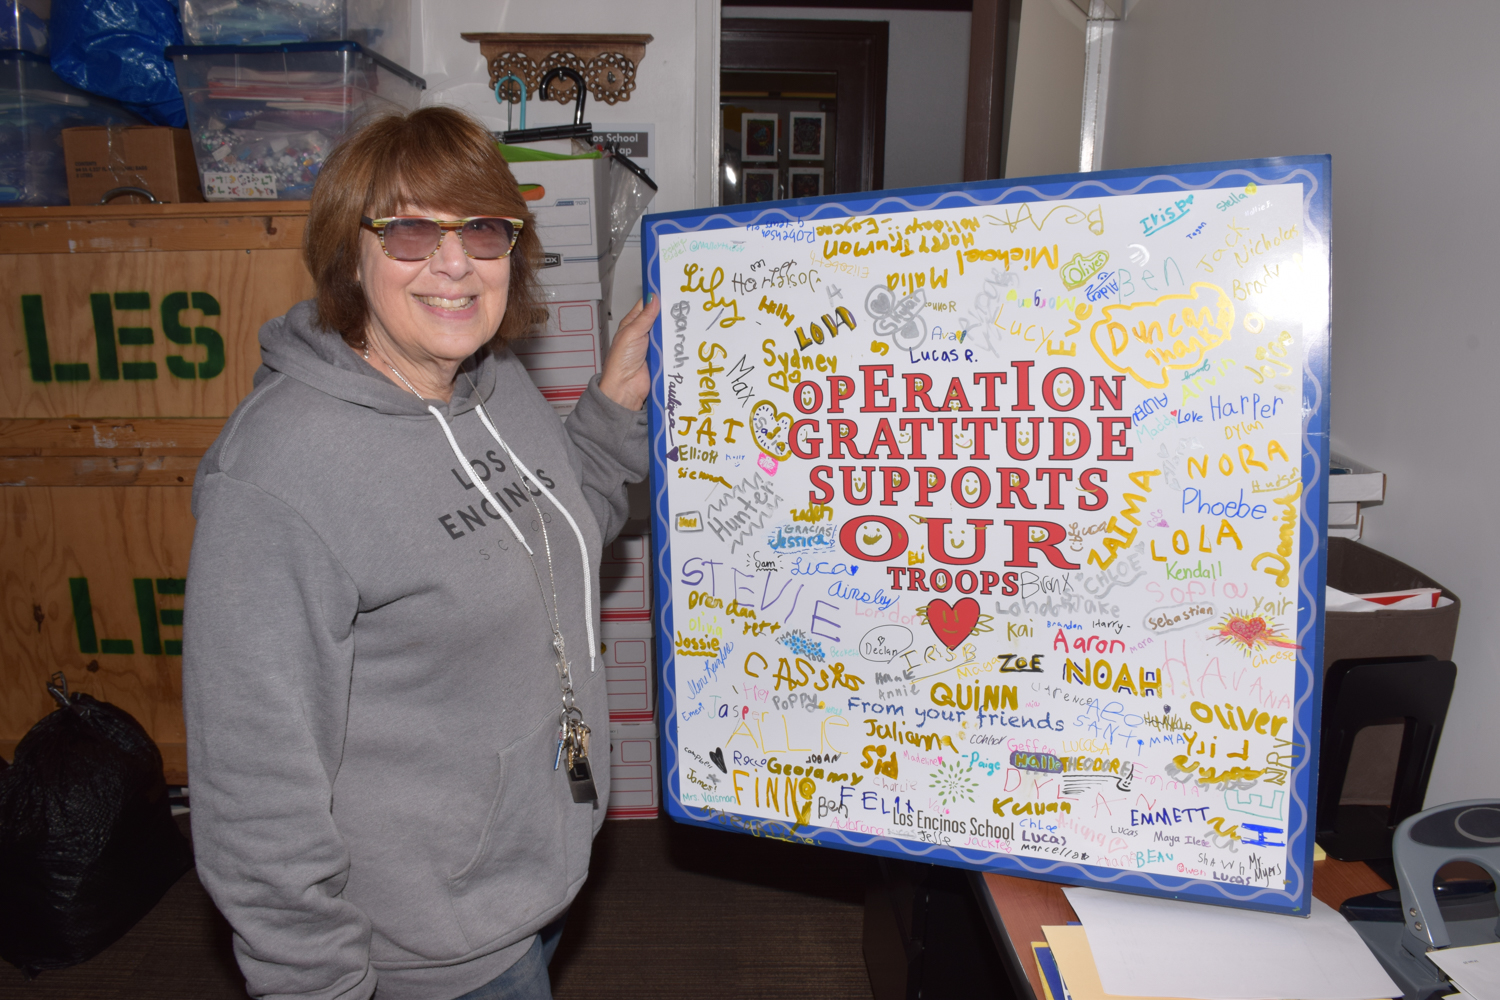 Photo: The author with an Operation Gratitude poster